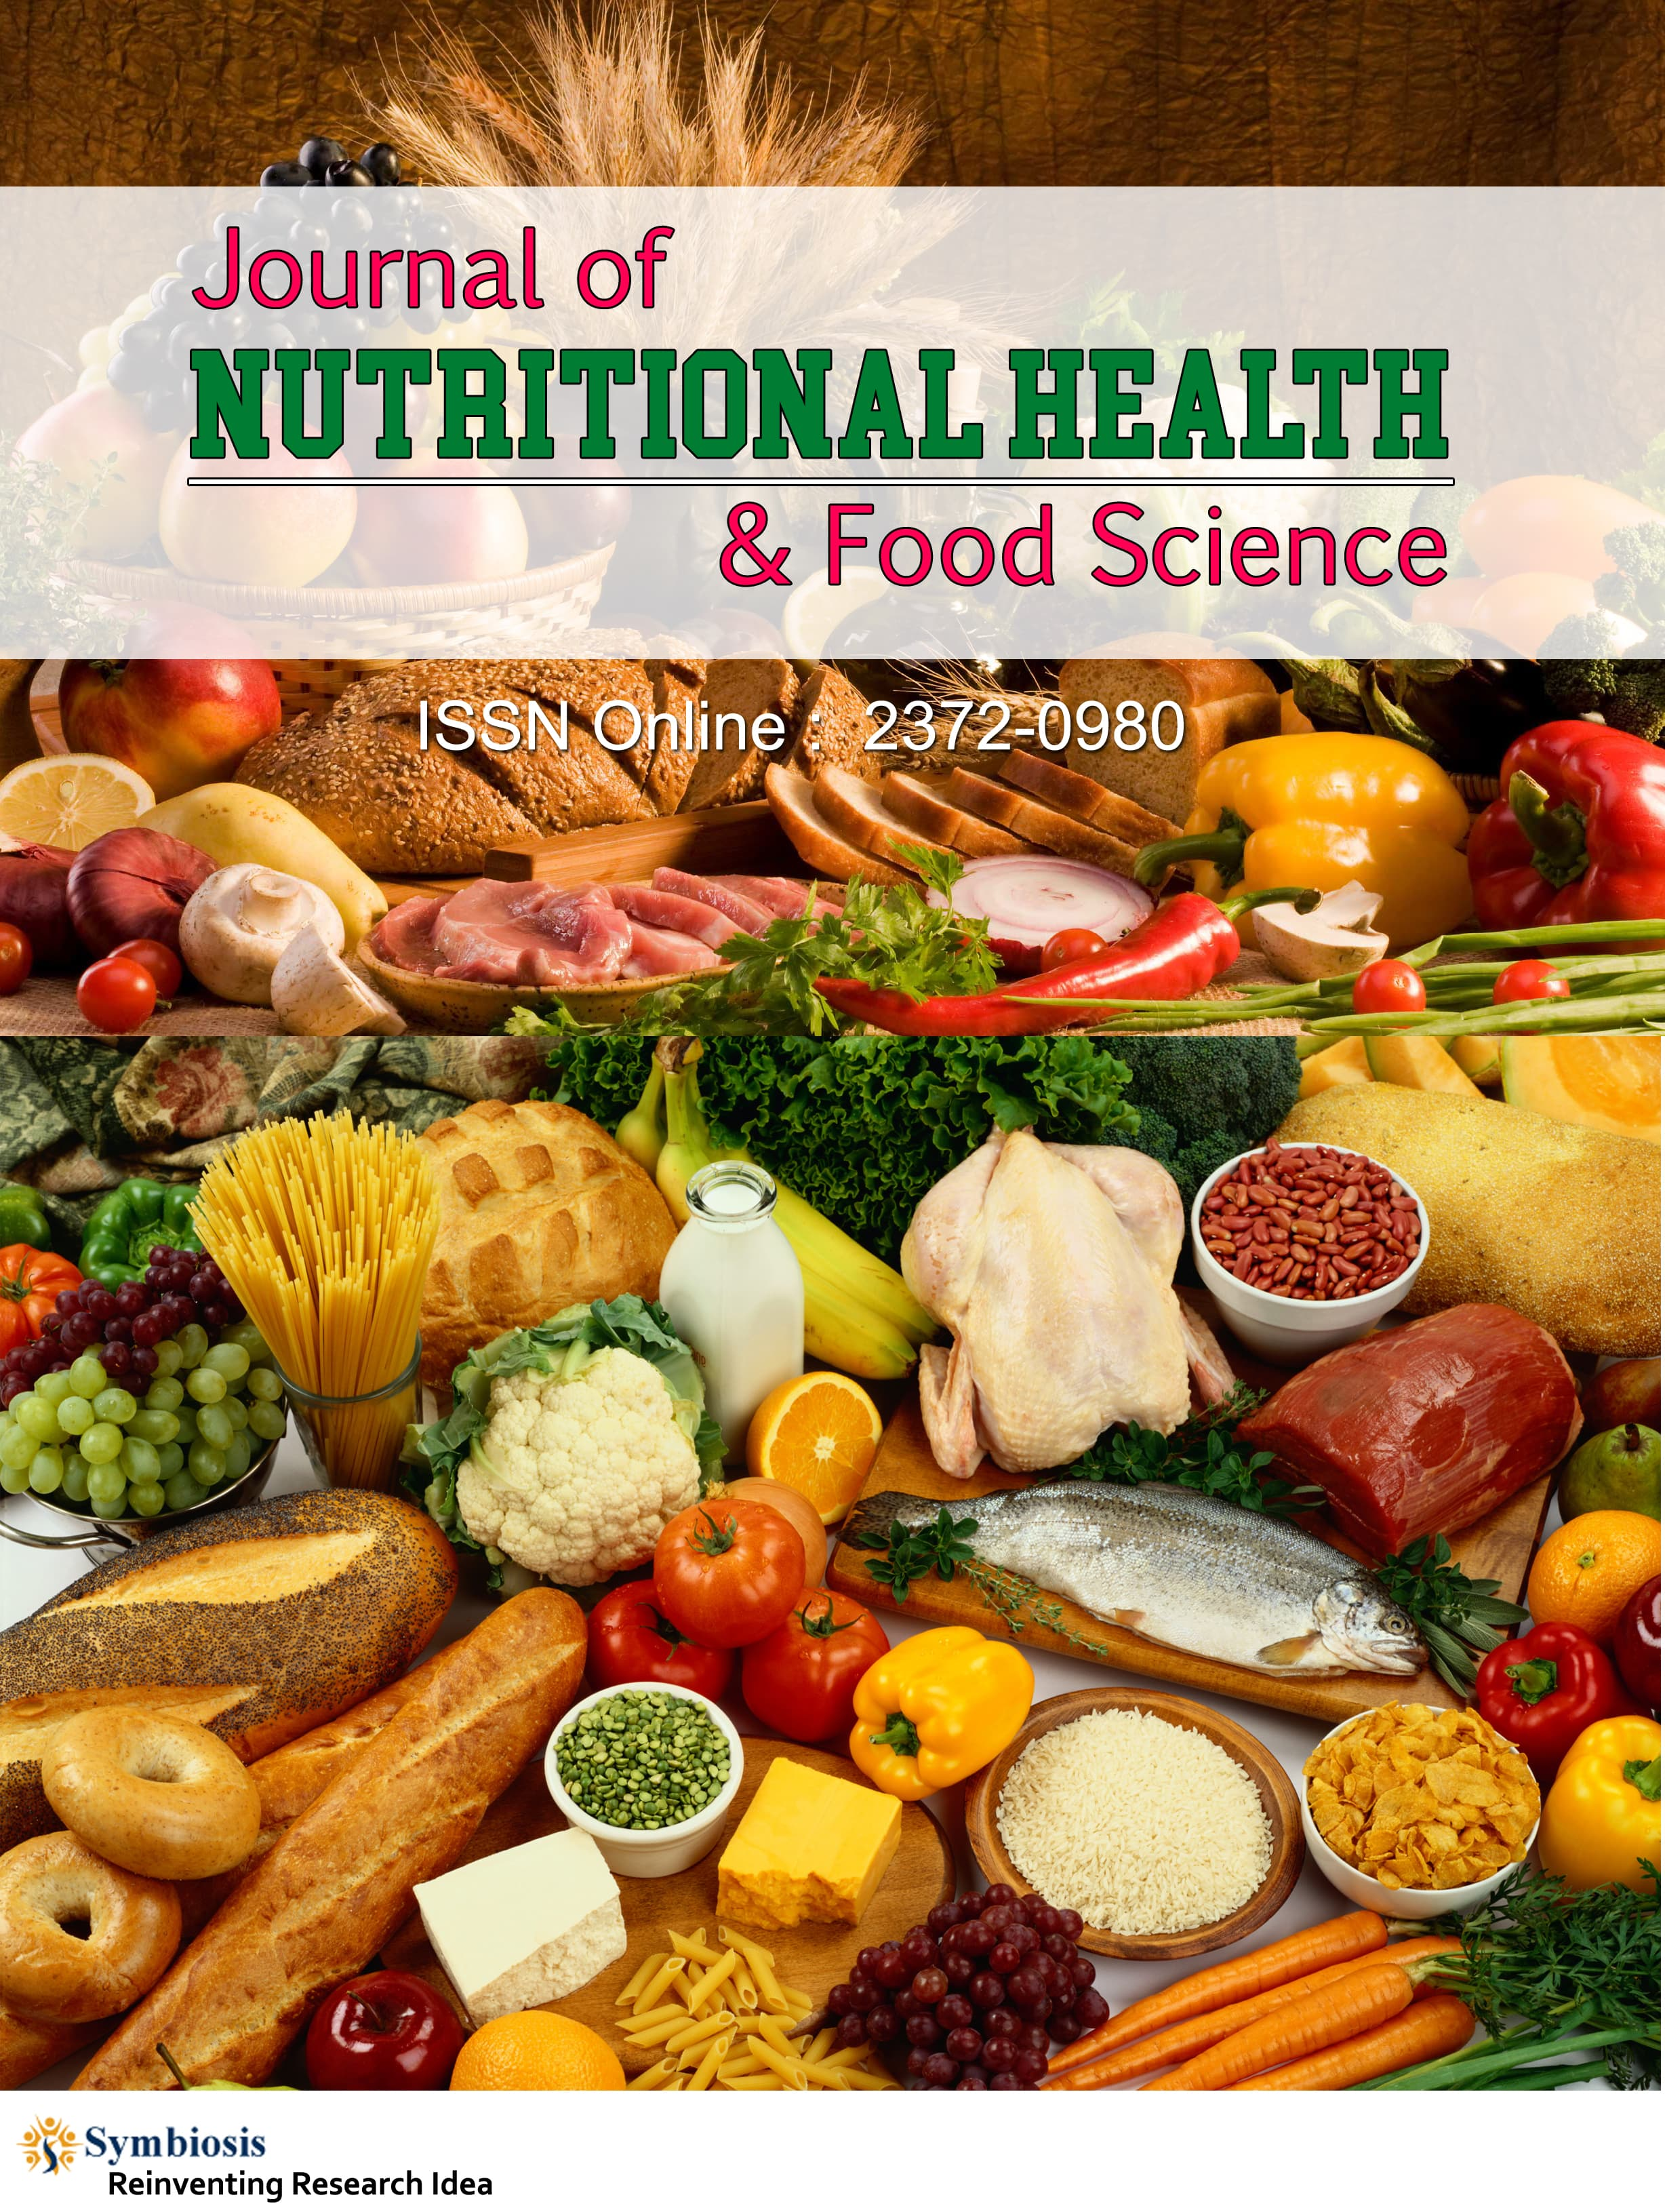 Journal of Nutritional Health & Food Science